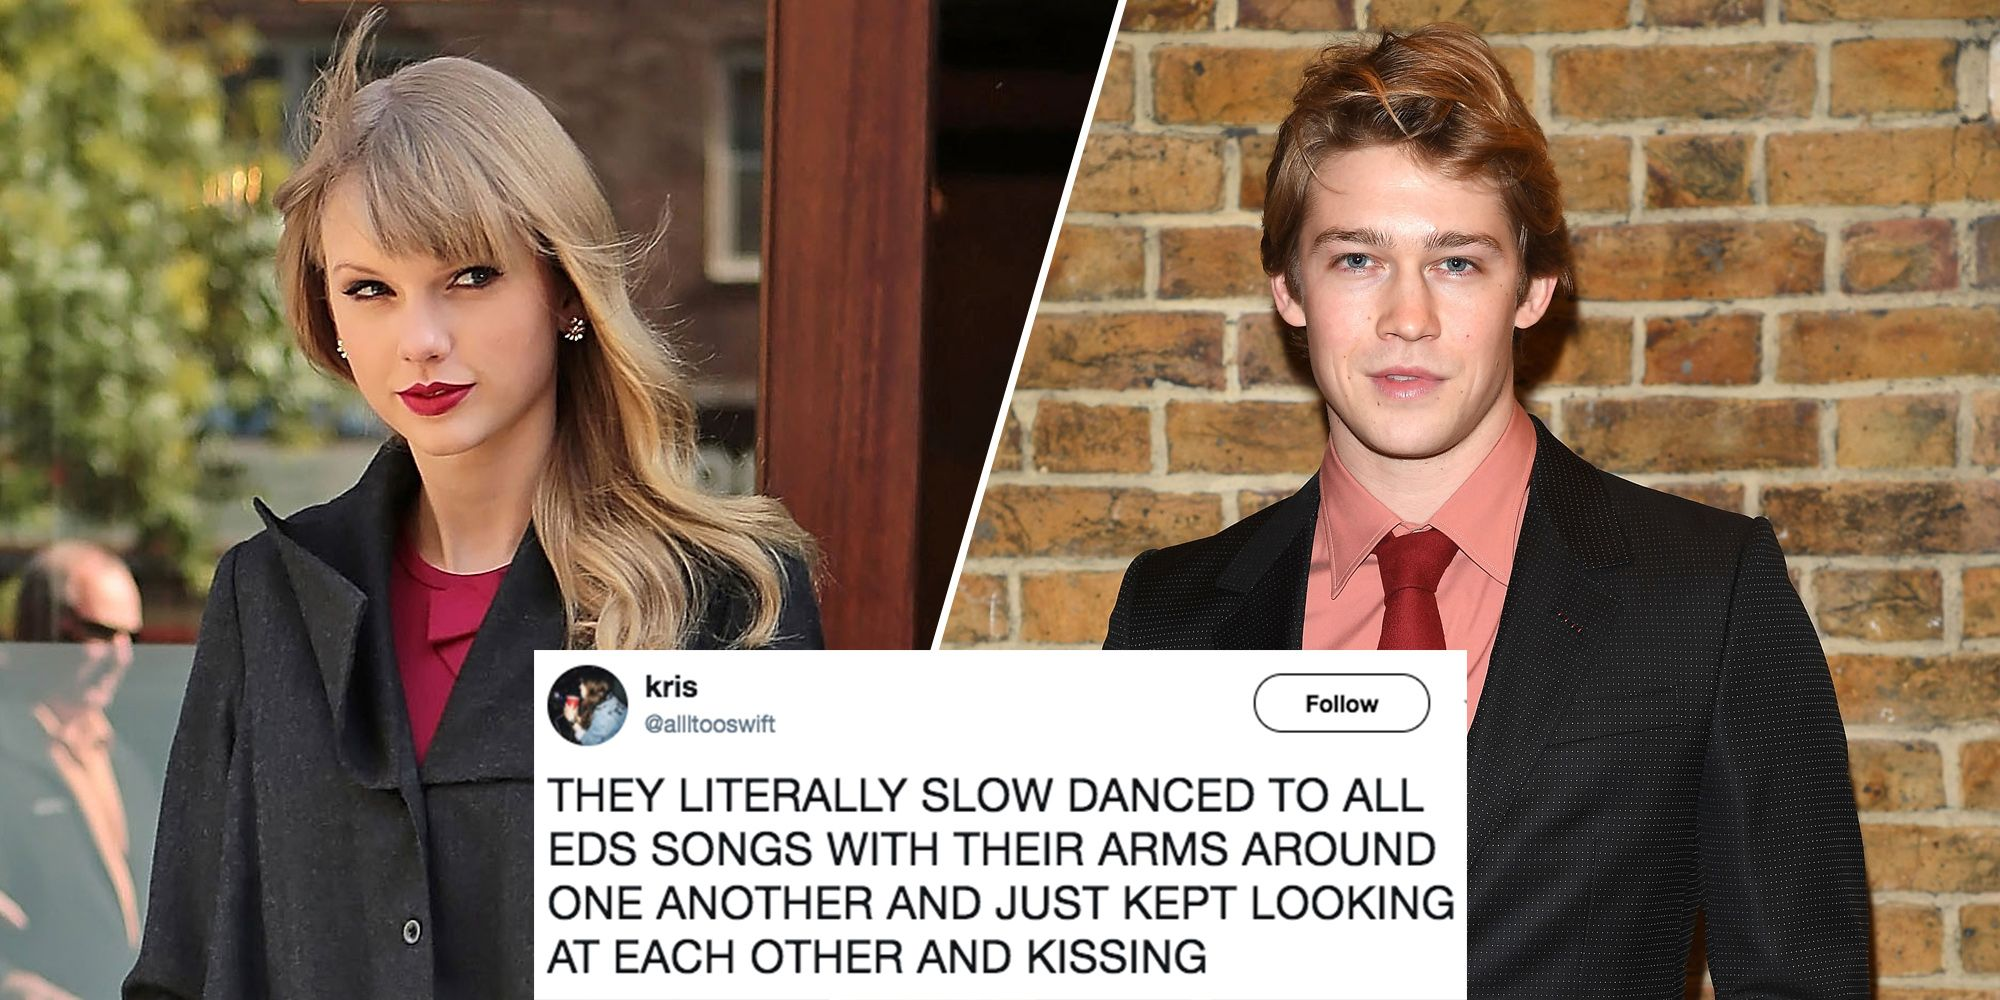 Taylor Swift And Joe Alwyn Slow Dance To Ed Sheeran Taylor Swift And Joe Alwyn Slow Dancing Videos